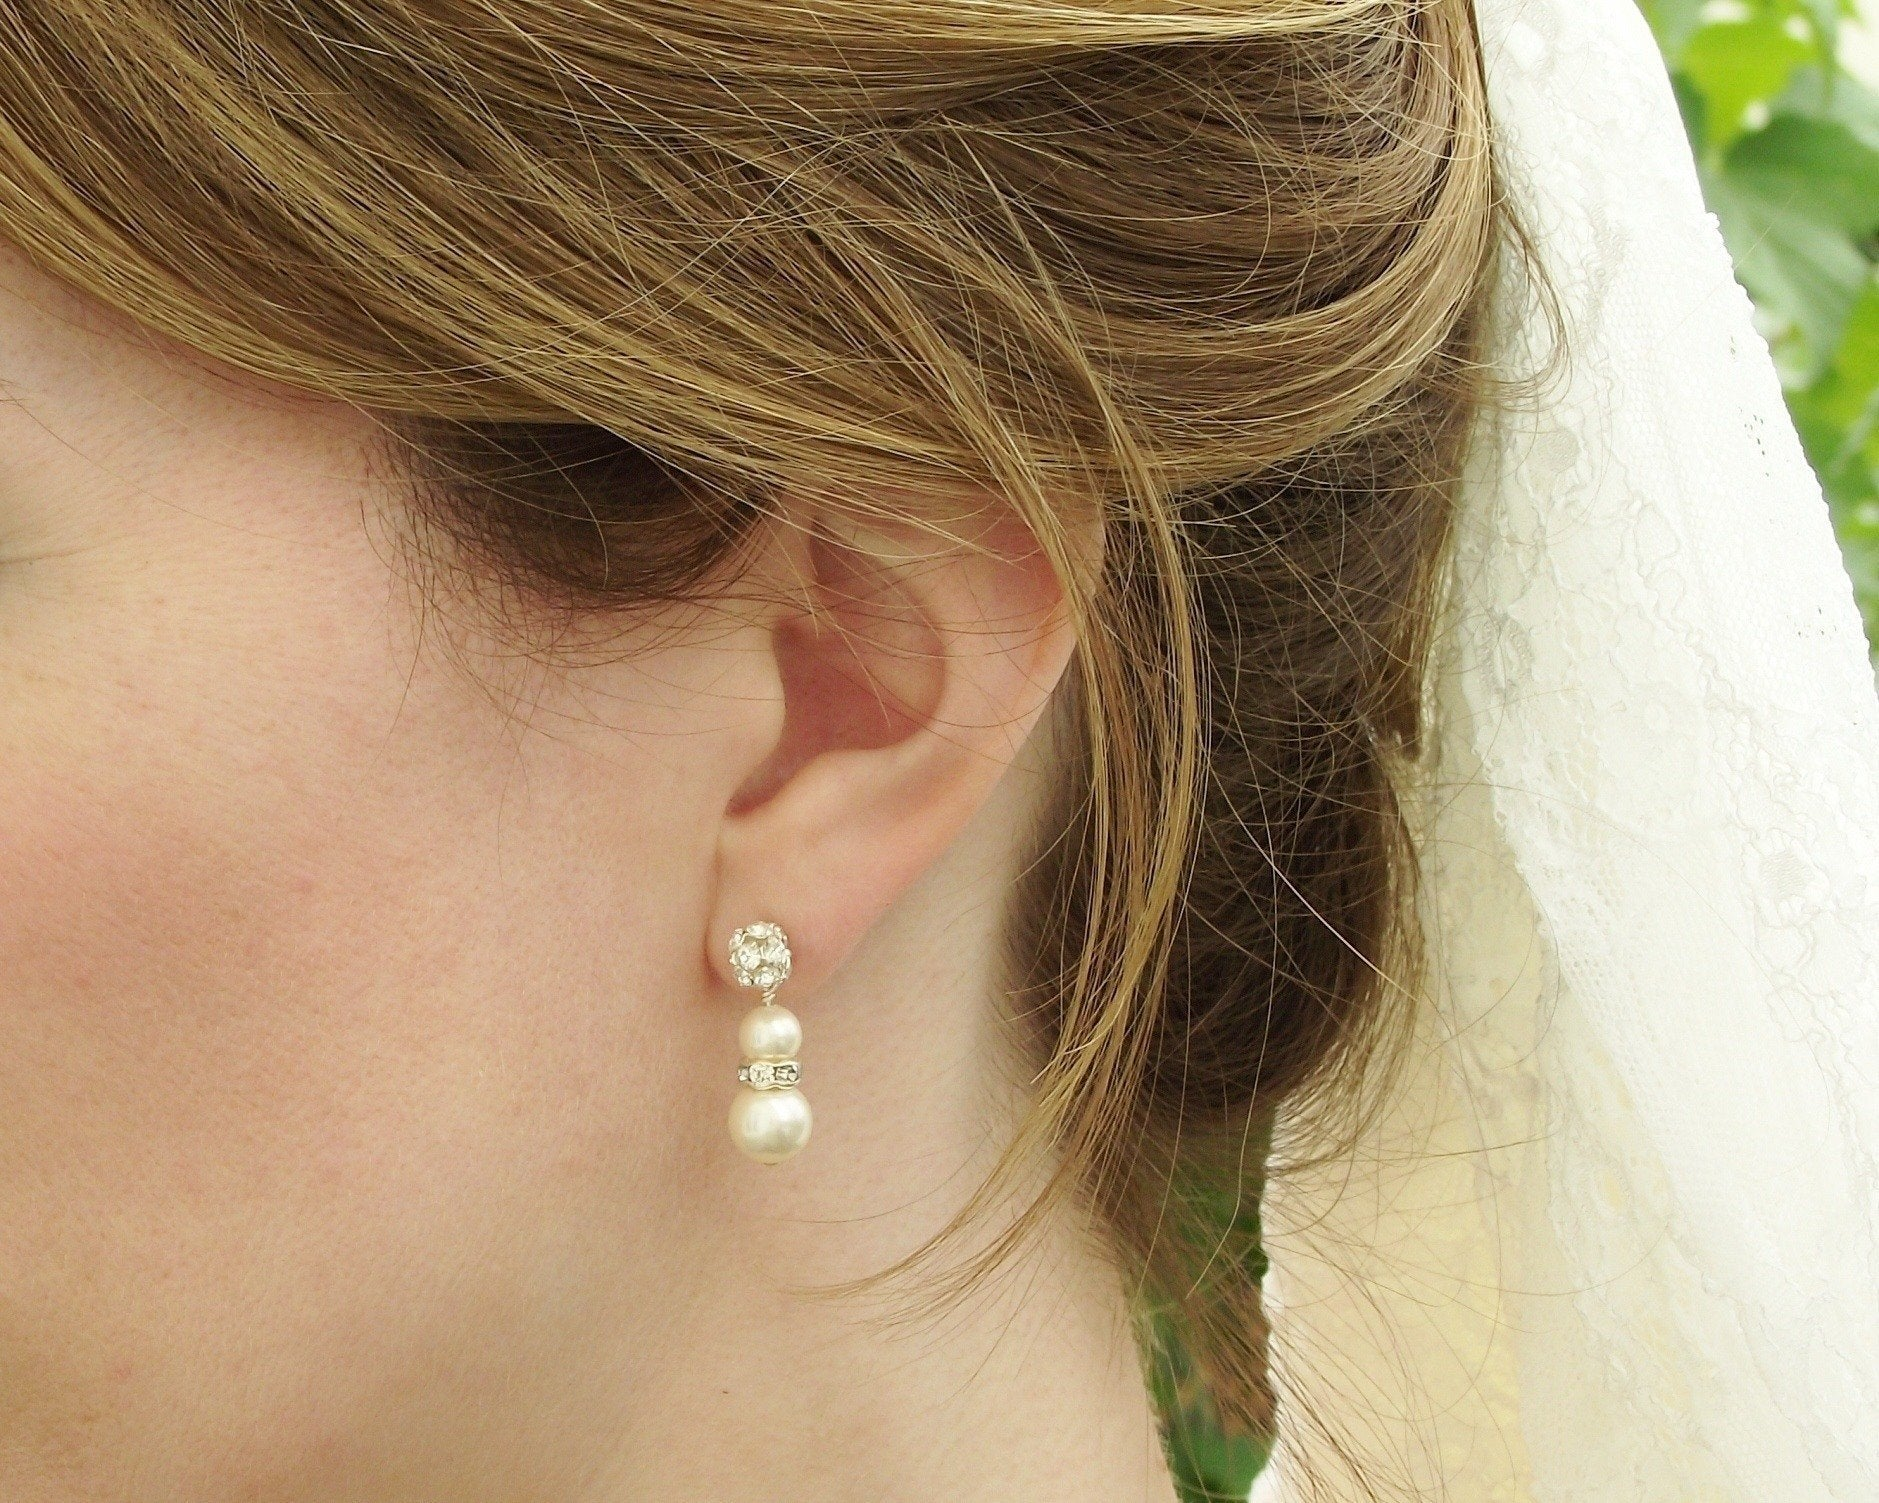 Wedding Earrings - Crystal Encrusted Pearl Drop Earrings, Sorrento